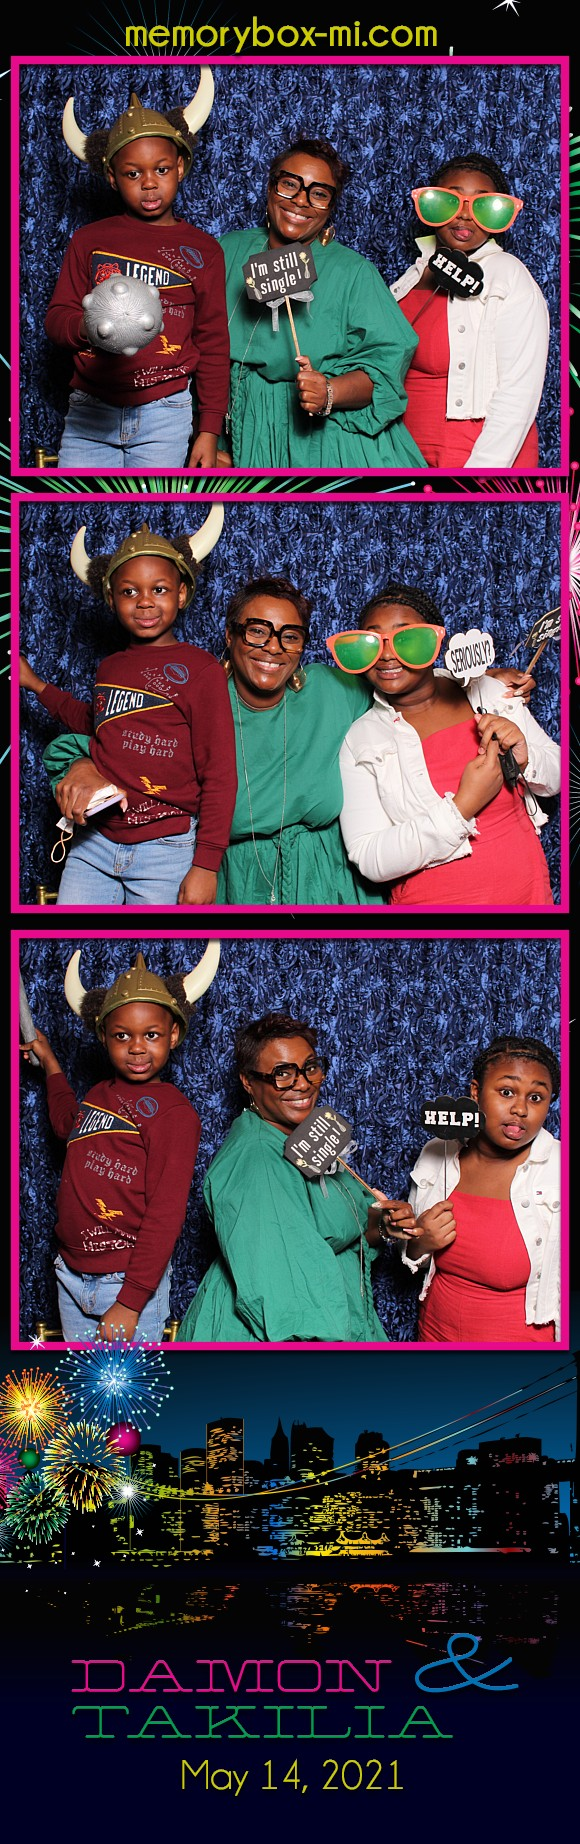 Damon & Takilia's Wedding | View more photos from the event at gallery.detroitphotobooth.com/u/photobooth/Damon-Takilias-Wedding